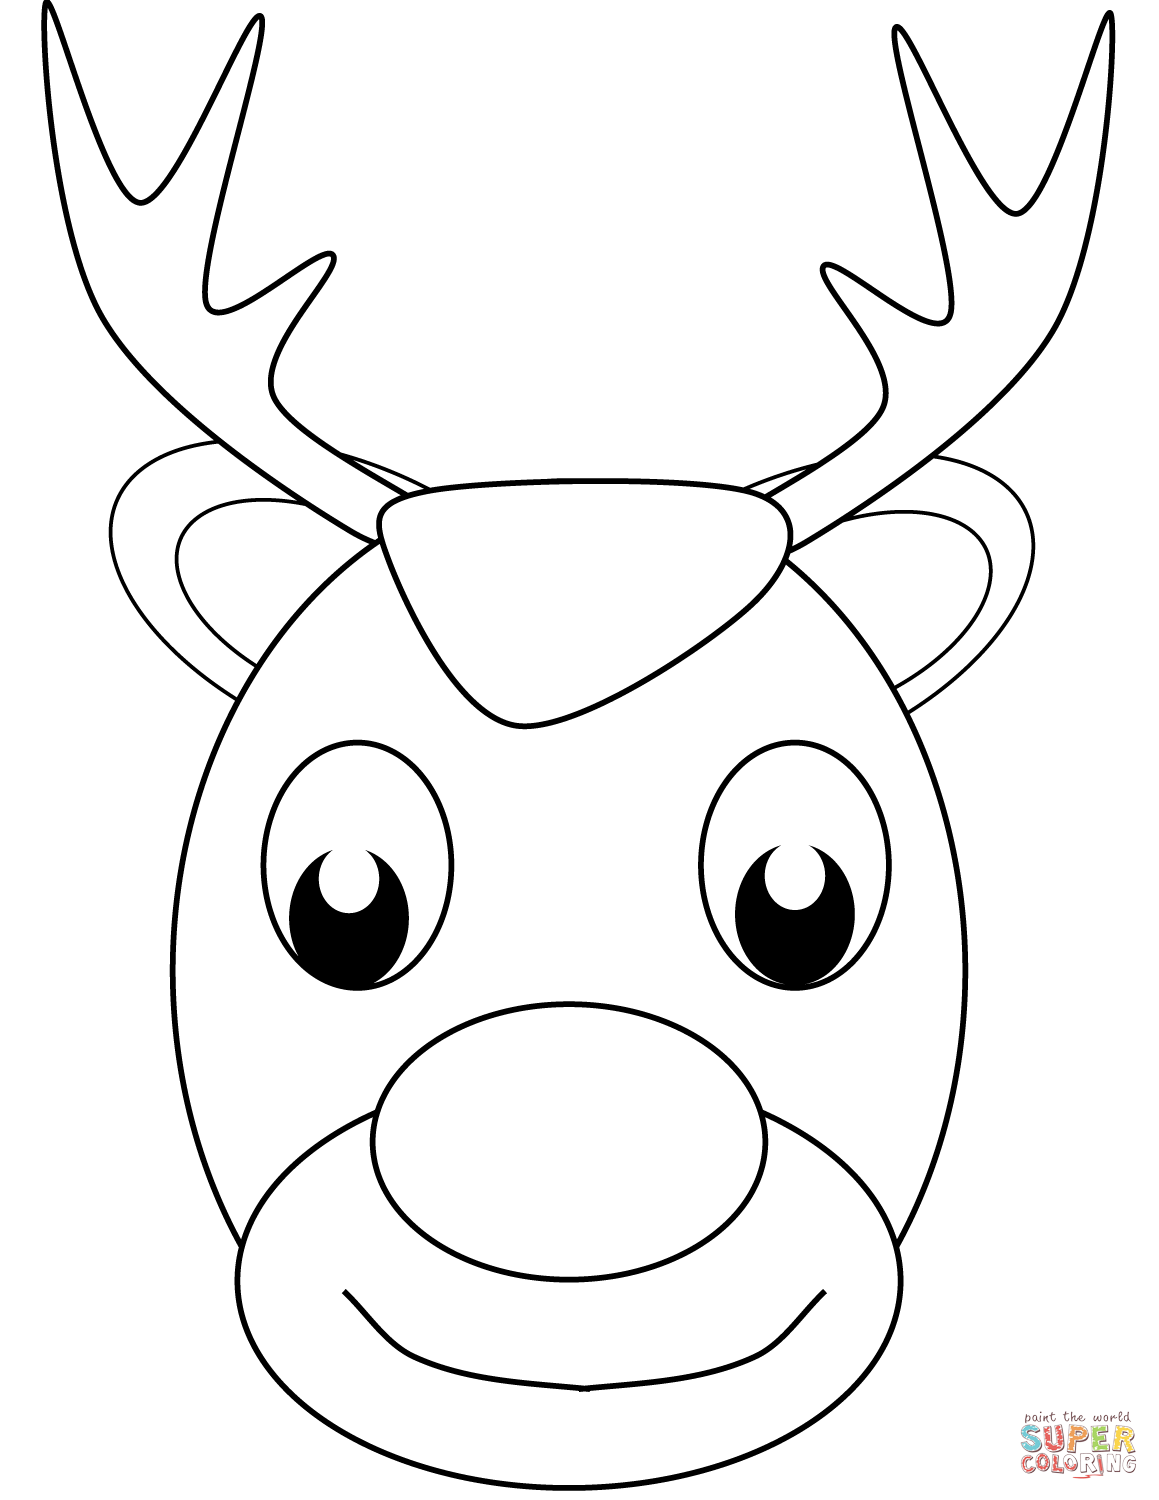 1159x1500 Christmas Reindeer Face Coloring Page Free Printable Coloring Pages